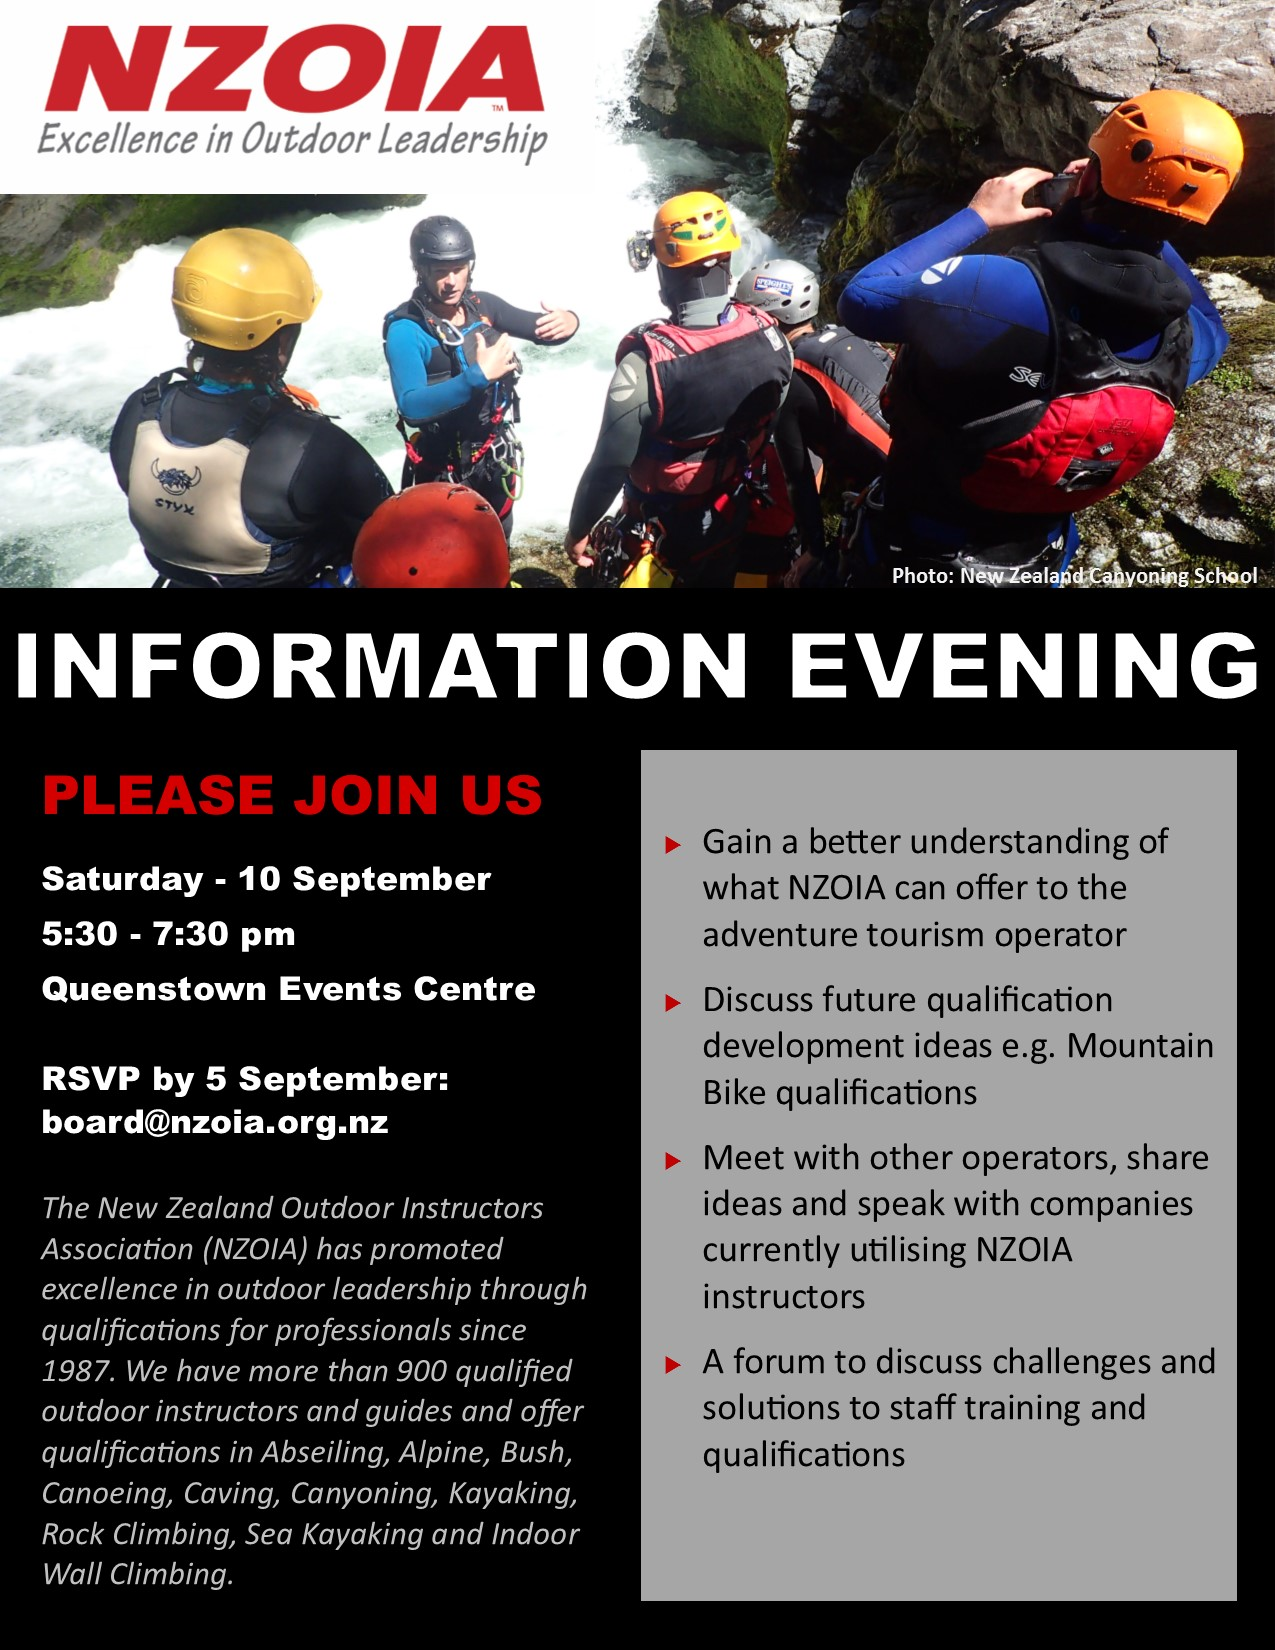 NZOIA Information Evening - Queenstown